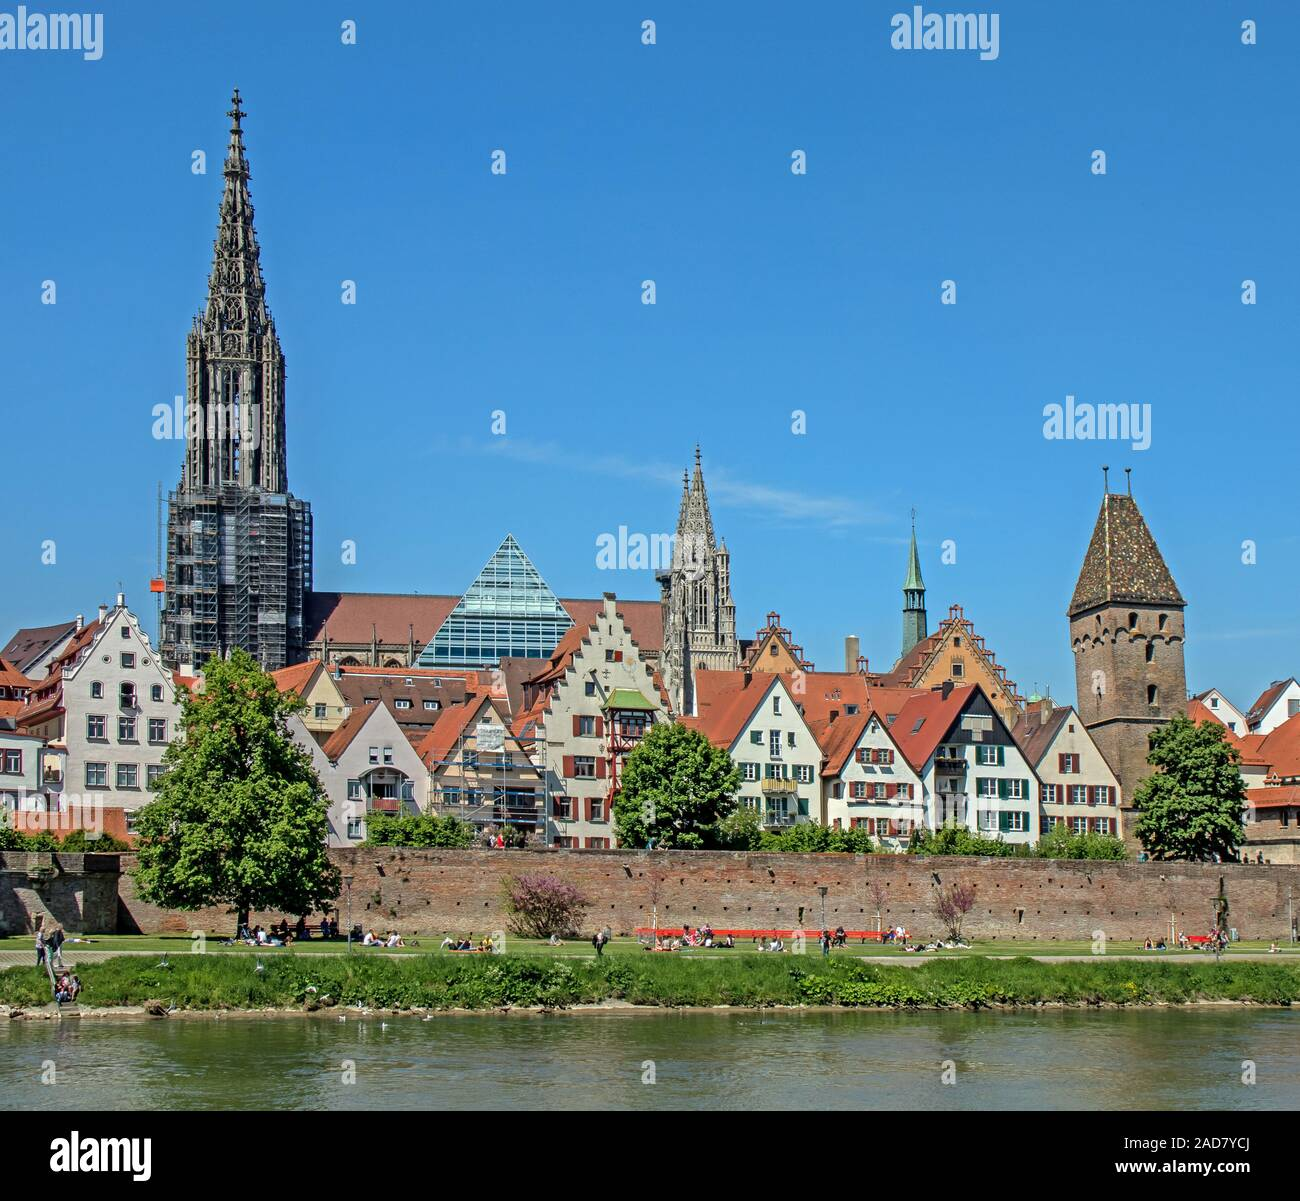 Ulm at the Danube with City wall, Minster and Metzgerturm Stock Photo